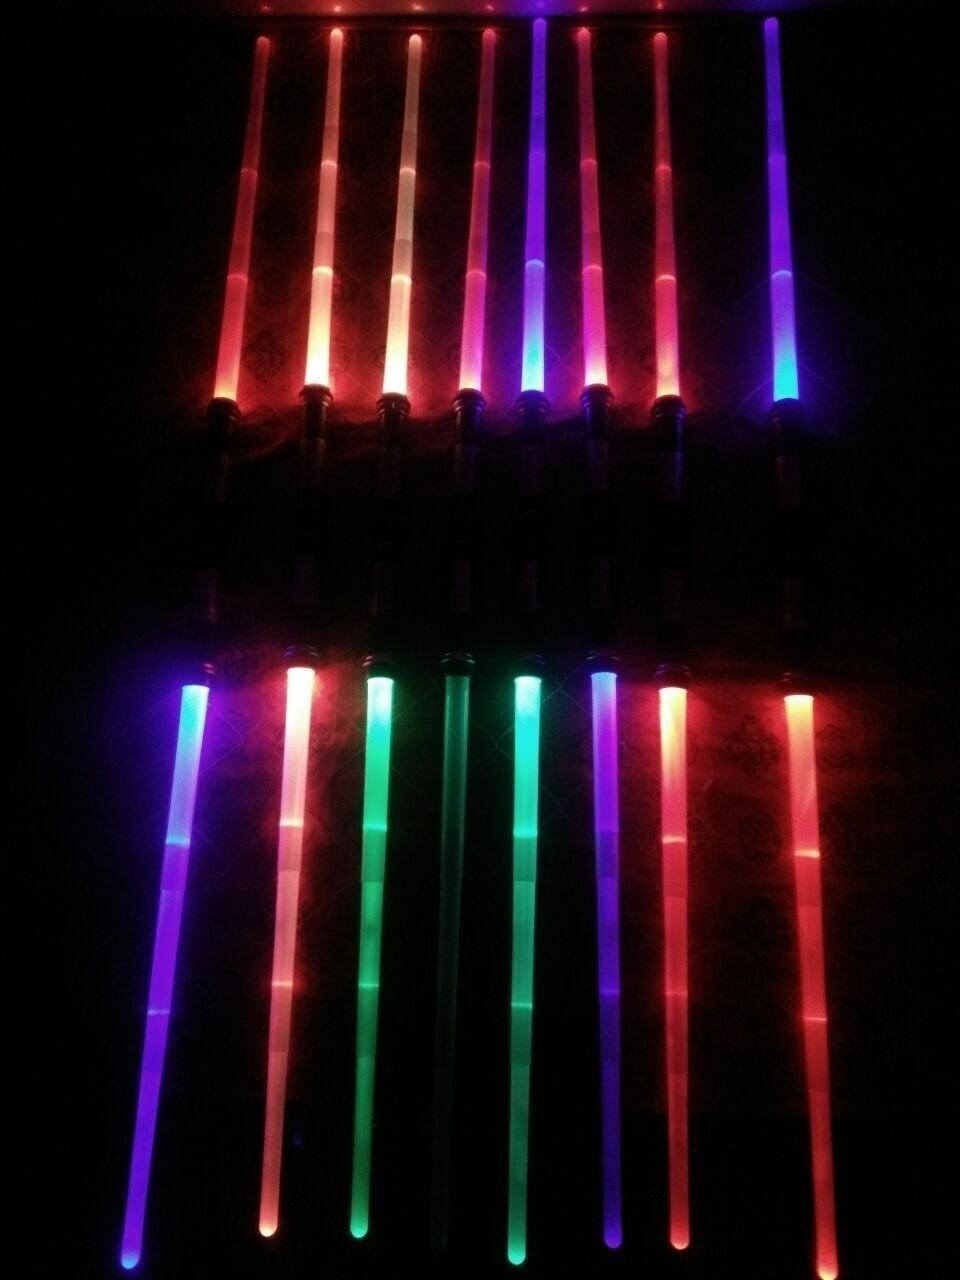 Double Edged SFX Sabers - All Colors & With Sound Effects!